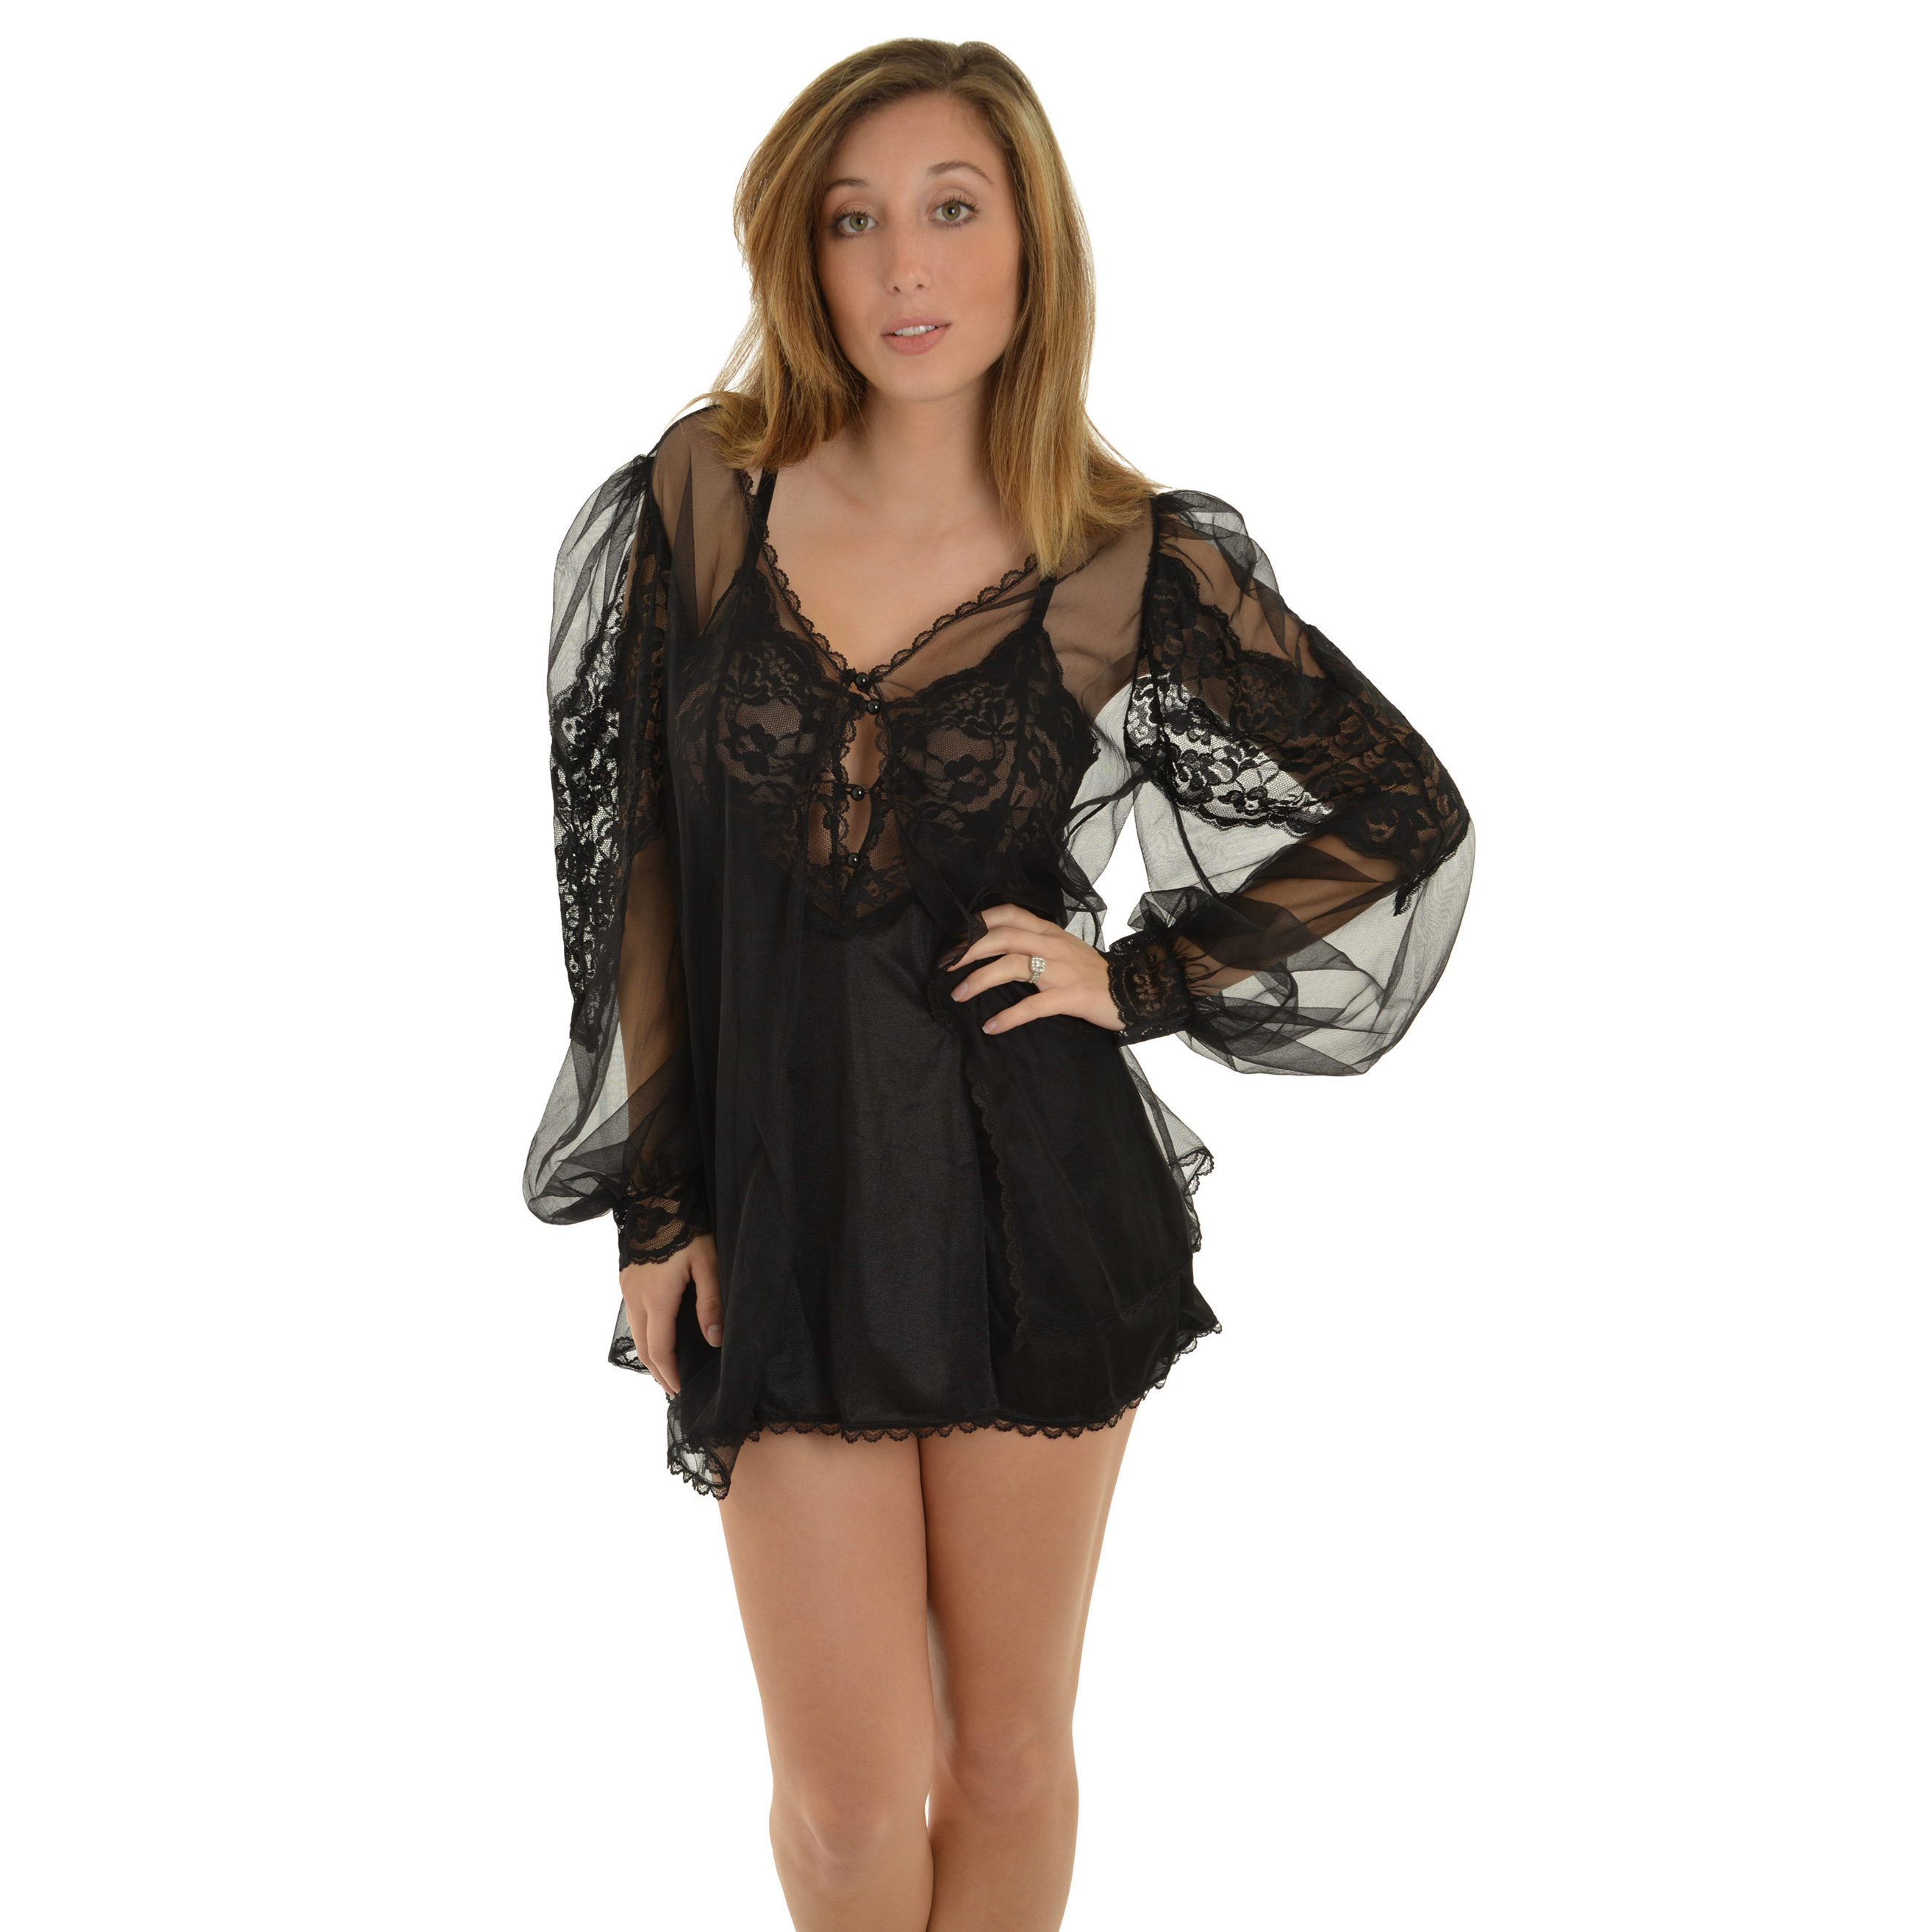 Fantasy Womens Black Classy Lingerie 3 Piece Set Chemise Panty and Mesh Robe